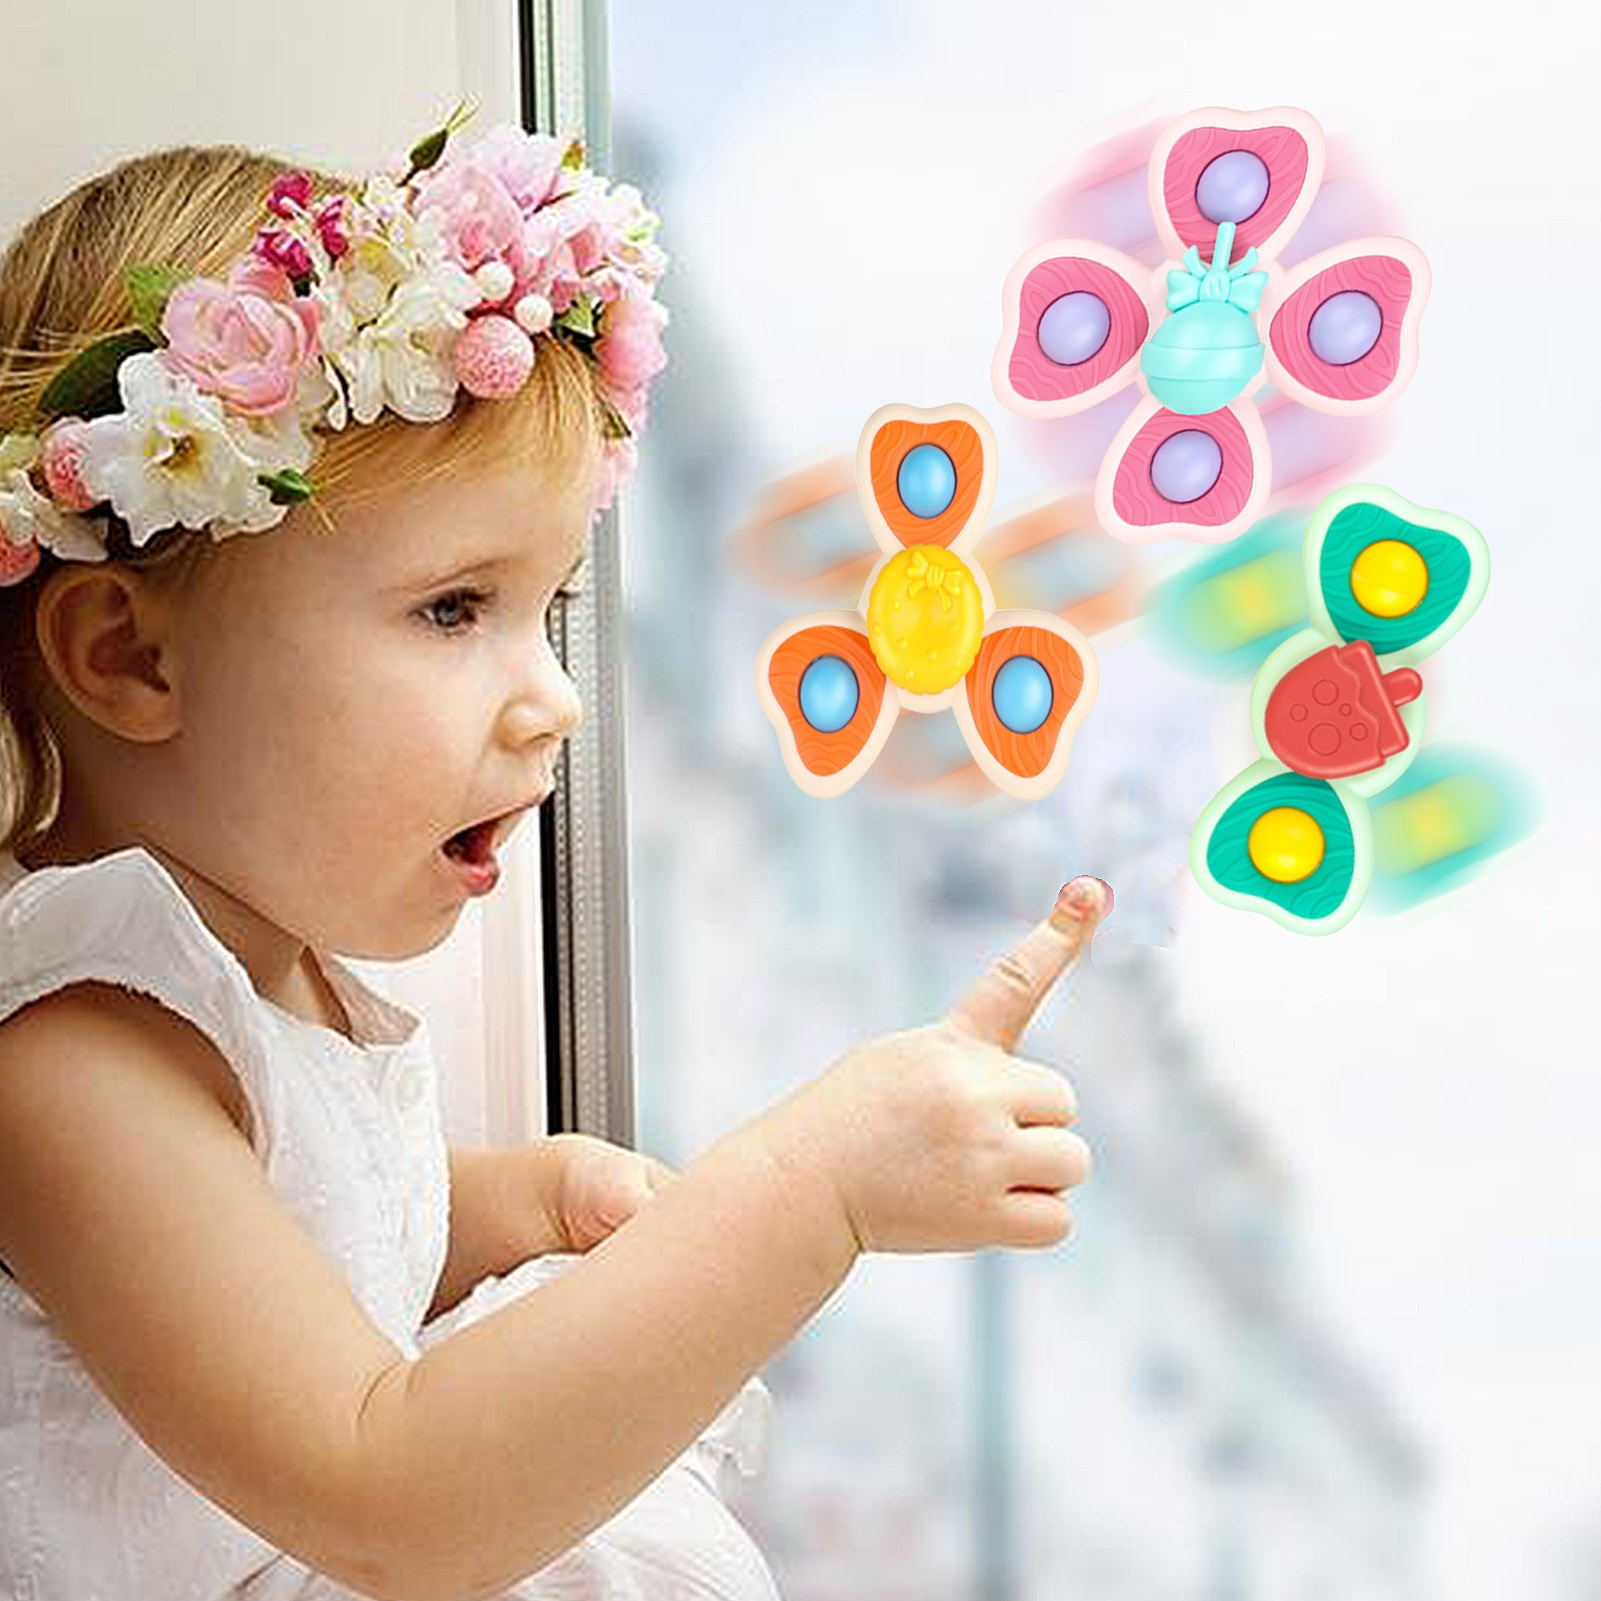 3PCS New Classic Funny Baby Suction Cup Spinner Toy Infant Spinning Top Bathing Fun Toys Baby Rattle Spin Top Bath Toy For Kids enlarge